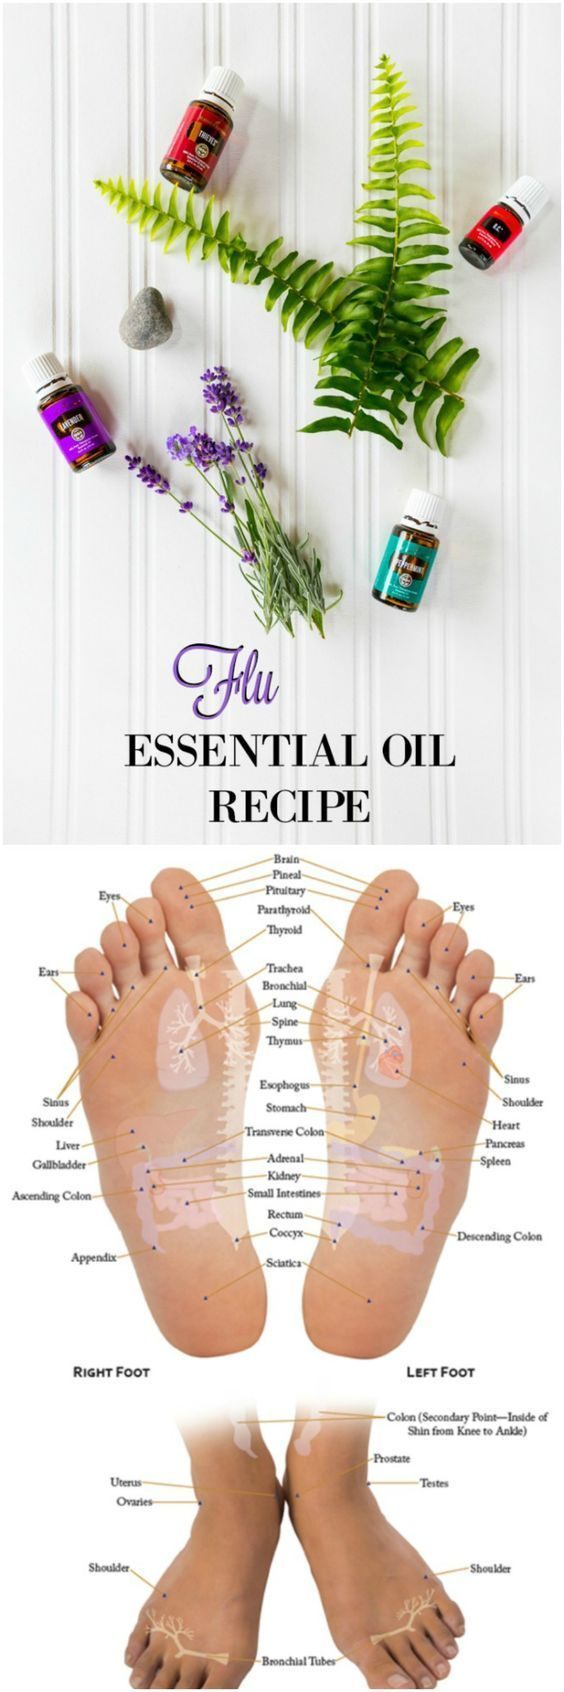 Young Living Essential Oil Recipe For The Flu.::